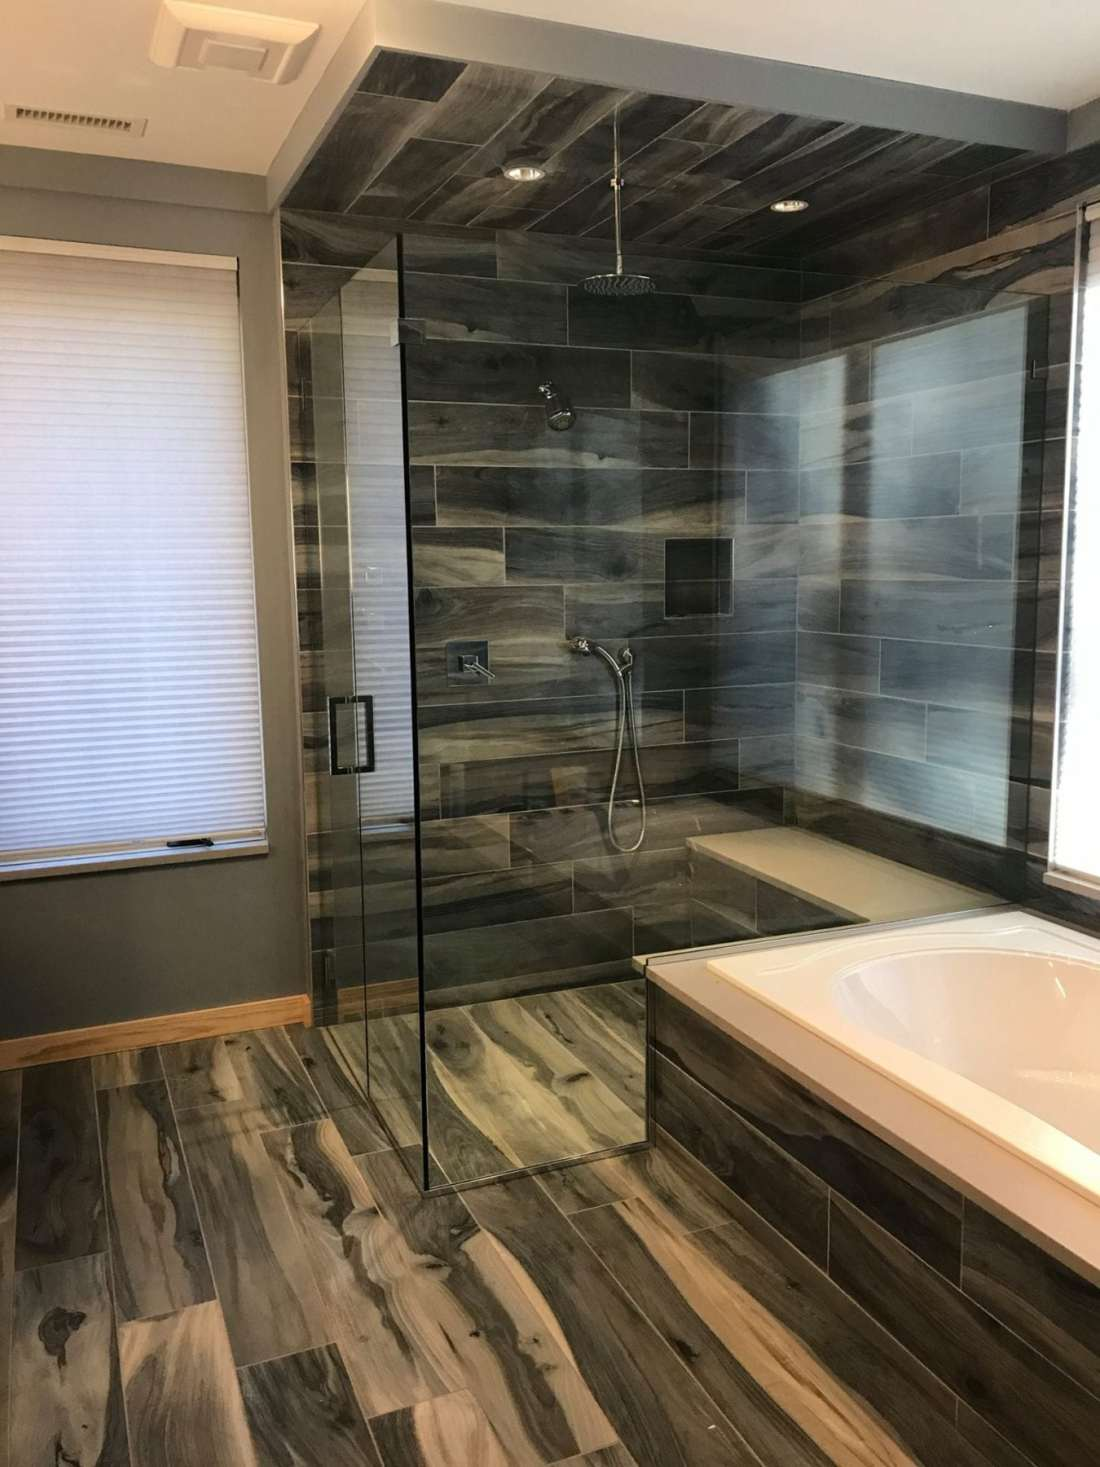 Absolute shower doors the best in custom glass shower doors since 1995 frameless shower door notched for tub deck planetlyrics Gallery